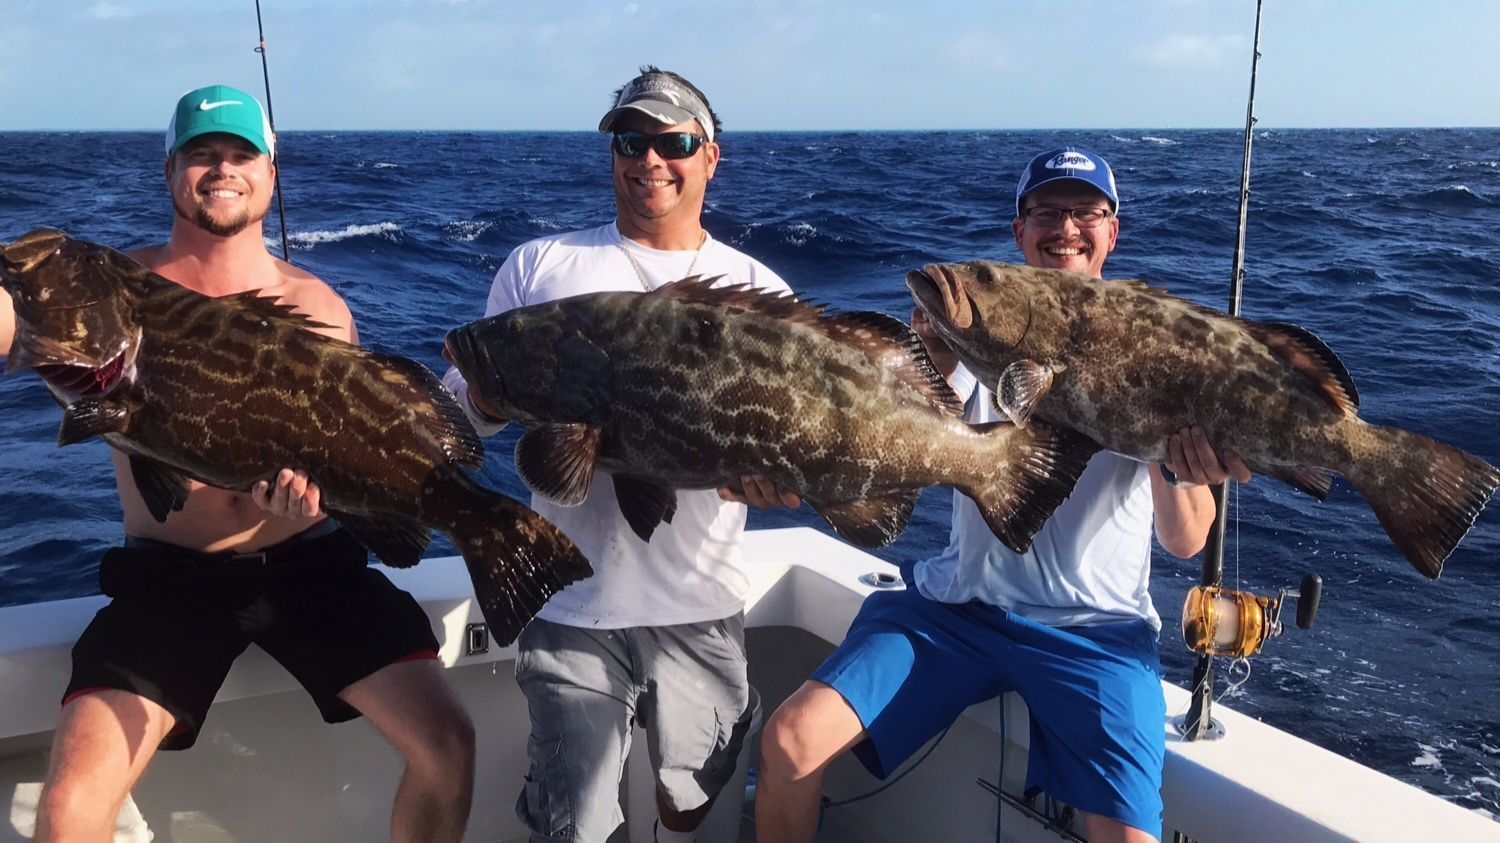 South florida fishing report mutton snappers and tunas for Fishing report mexico beach fl